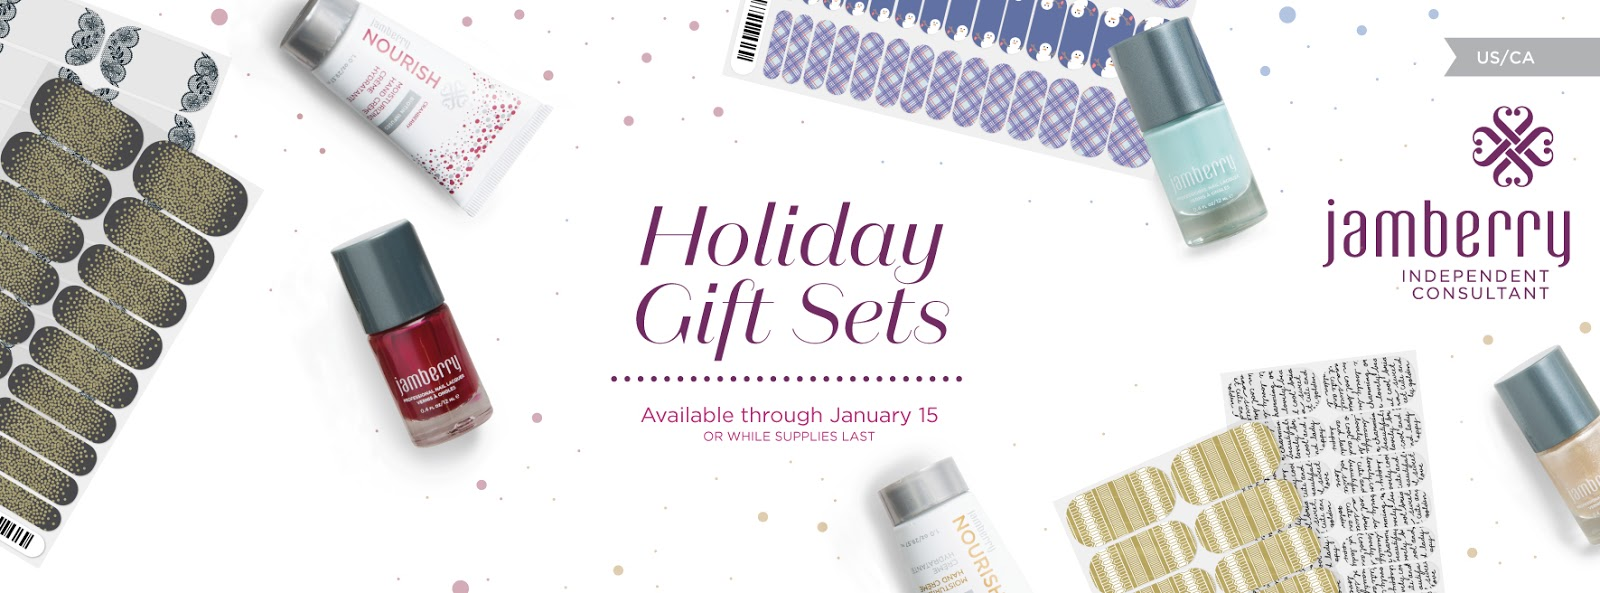 Jamberry Holiday Gift Sets Winter Wishes All Is Bright And Snow Angels - The Reinvention Of ...